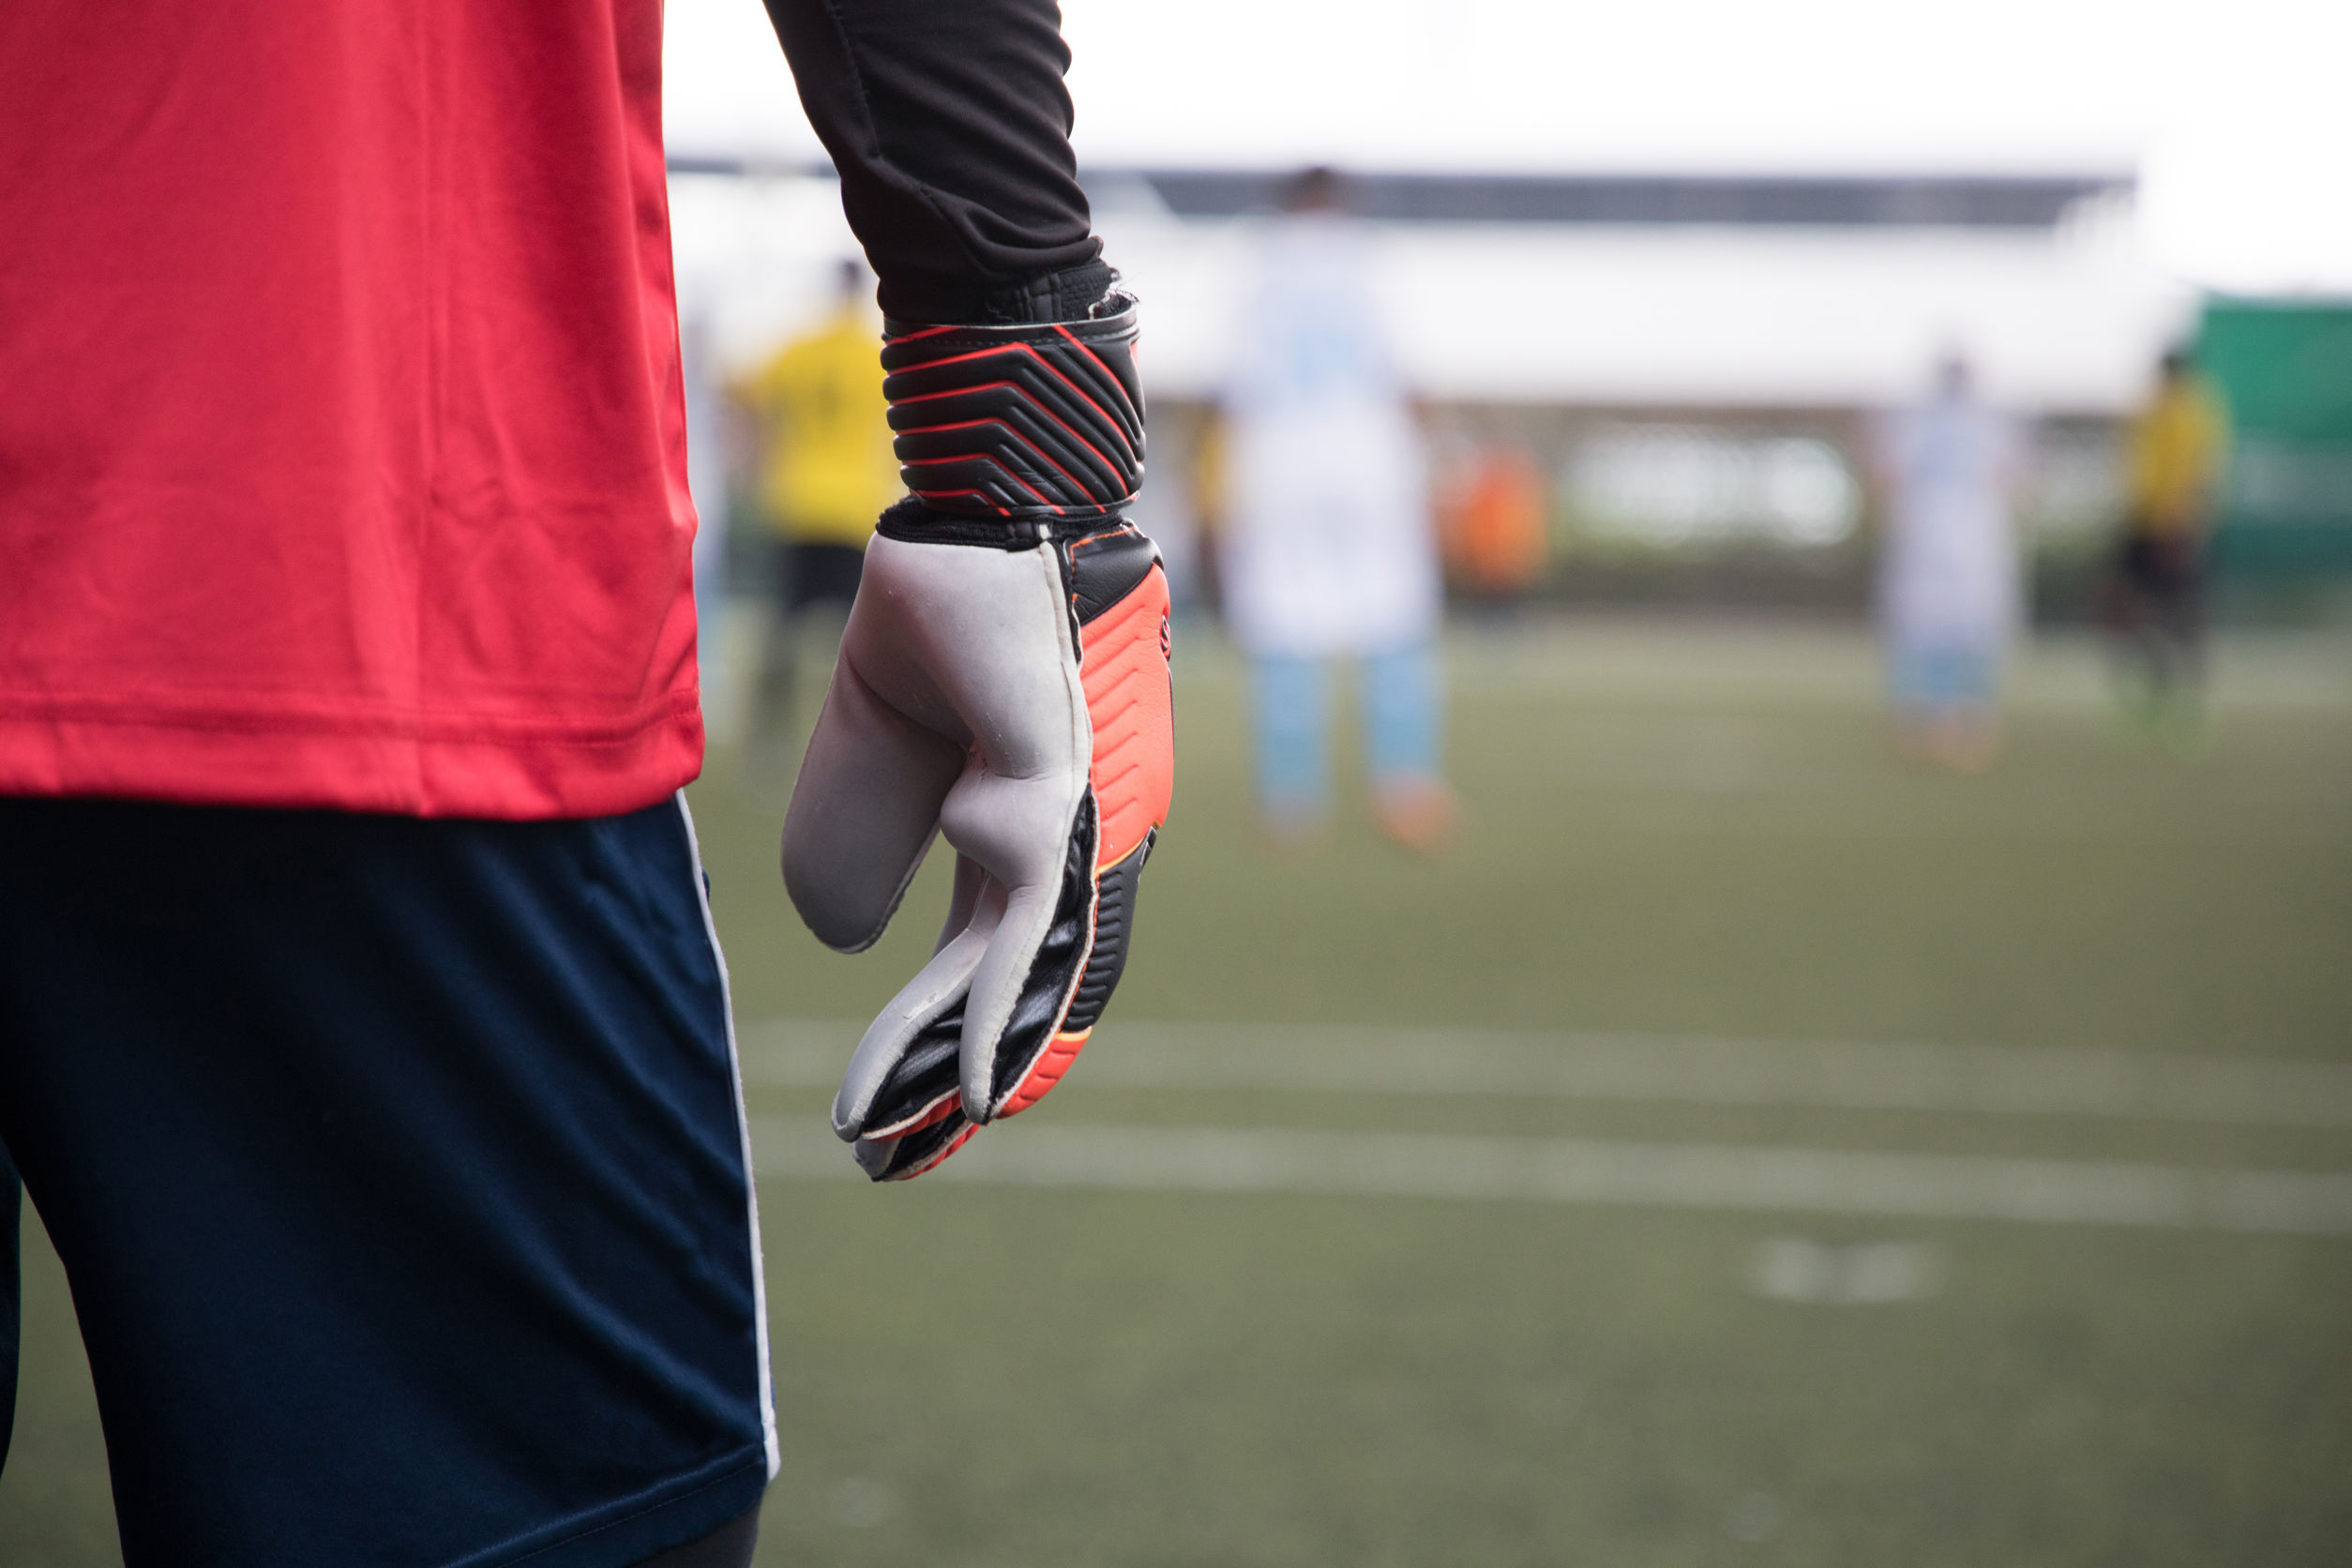 Best Goalkeeper Gloves 2020: Shopping Guide & Review